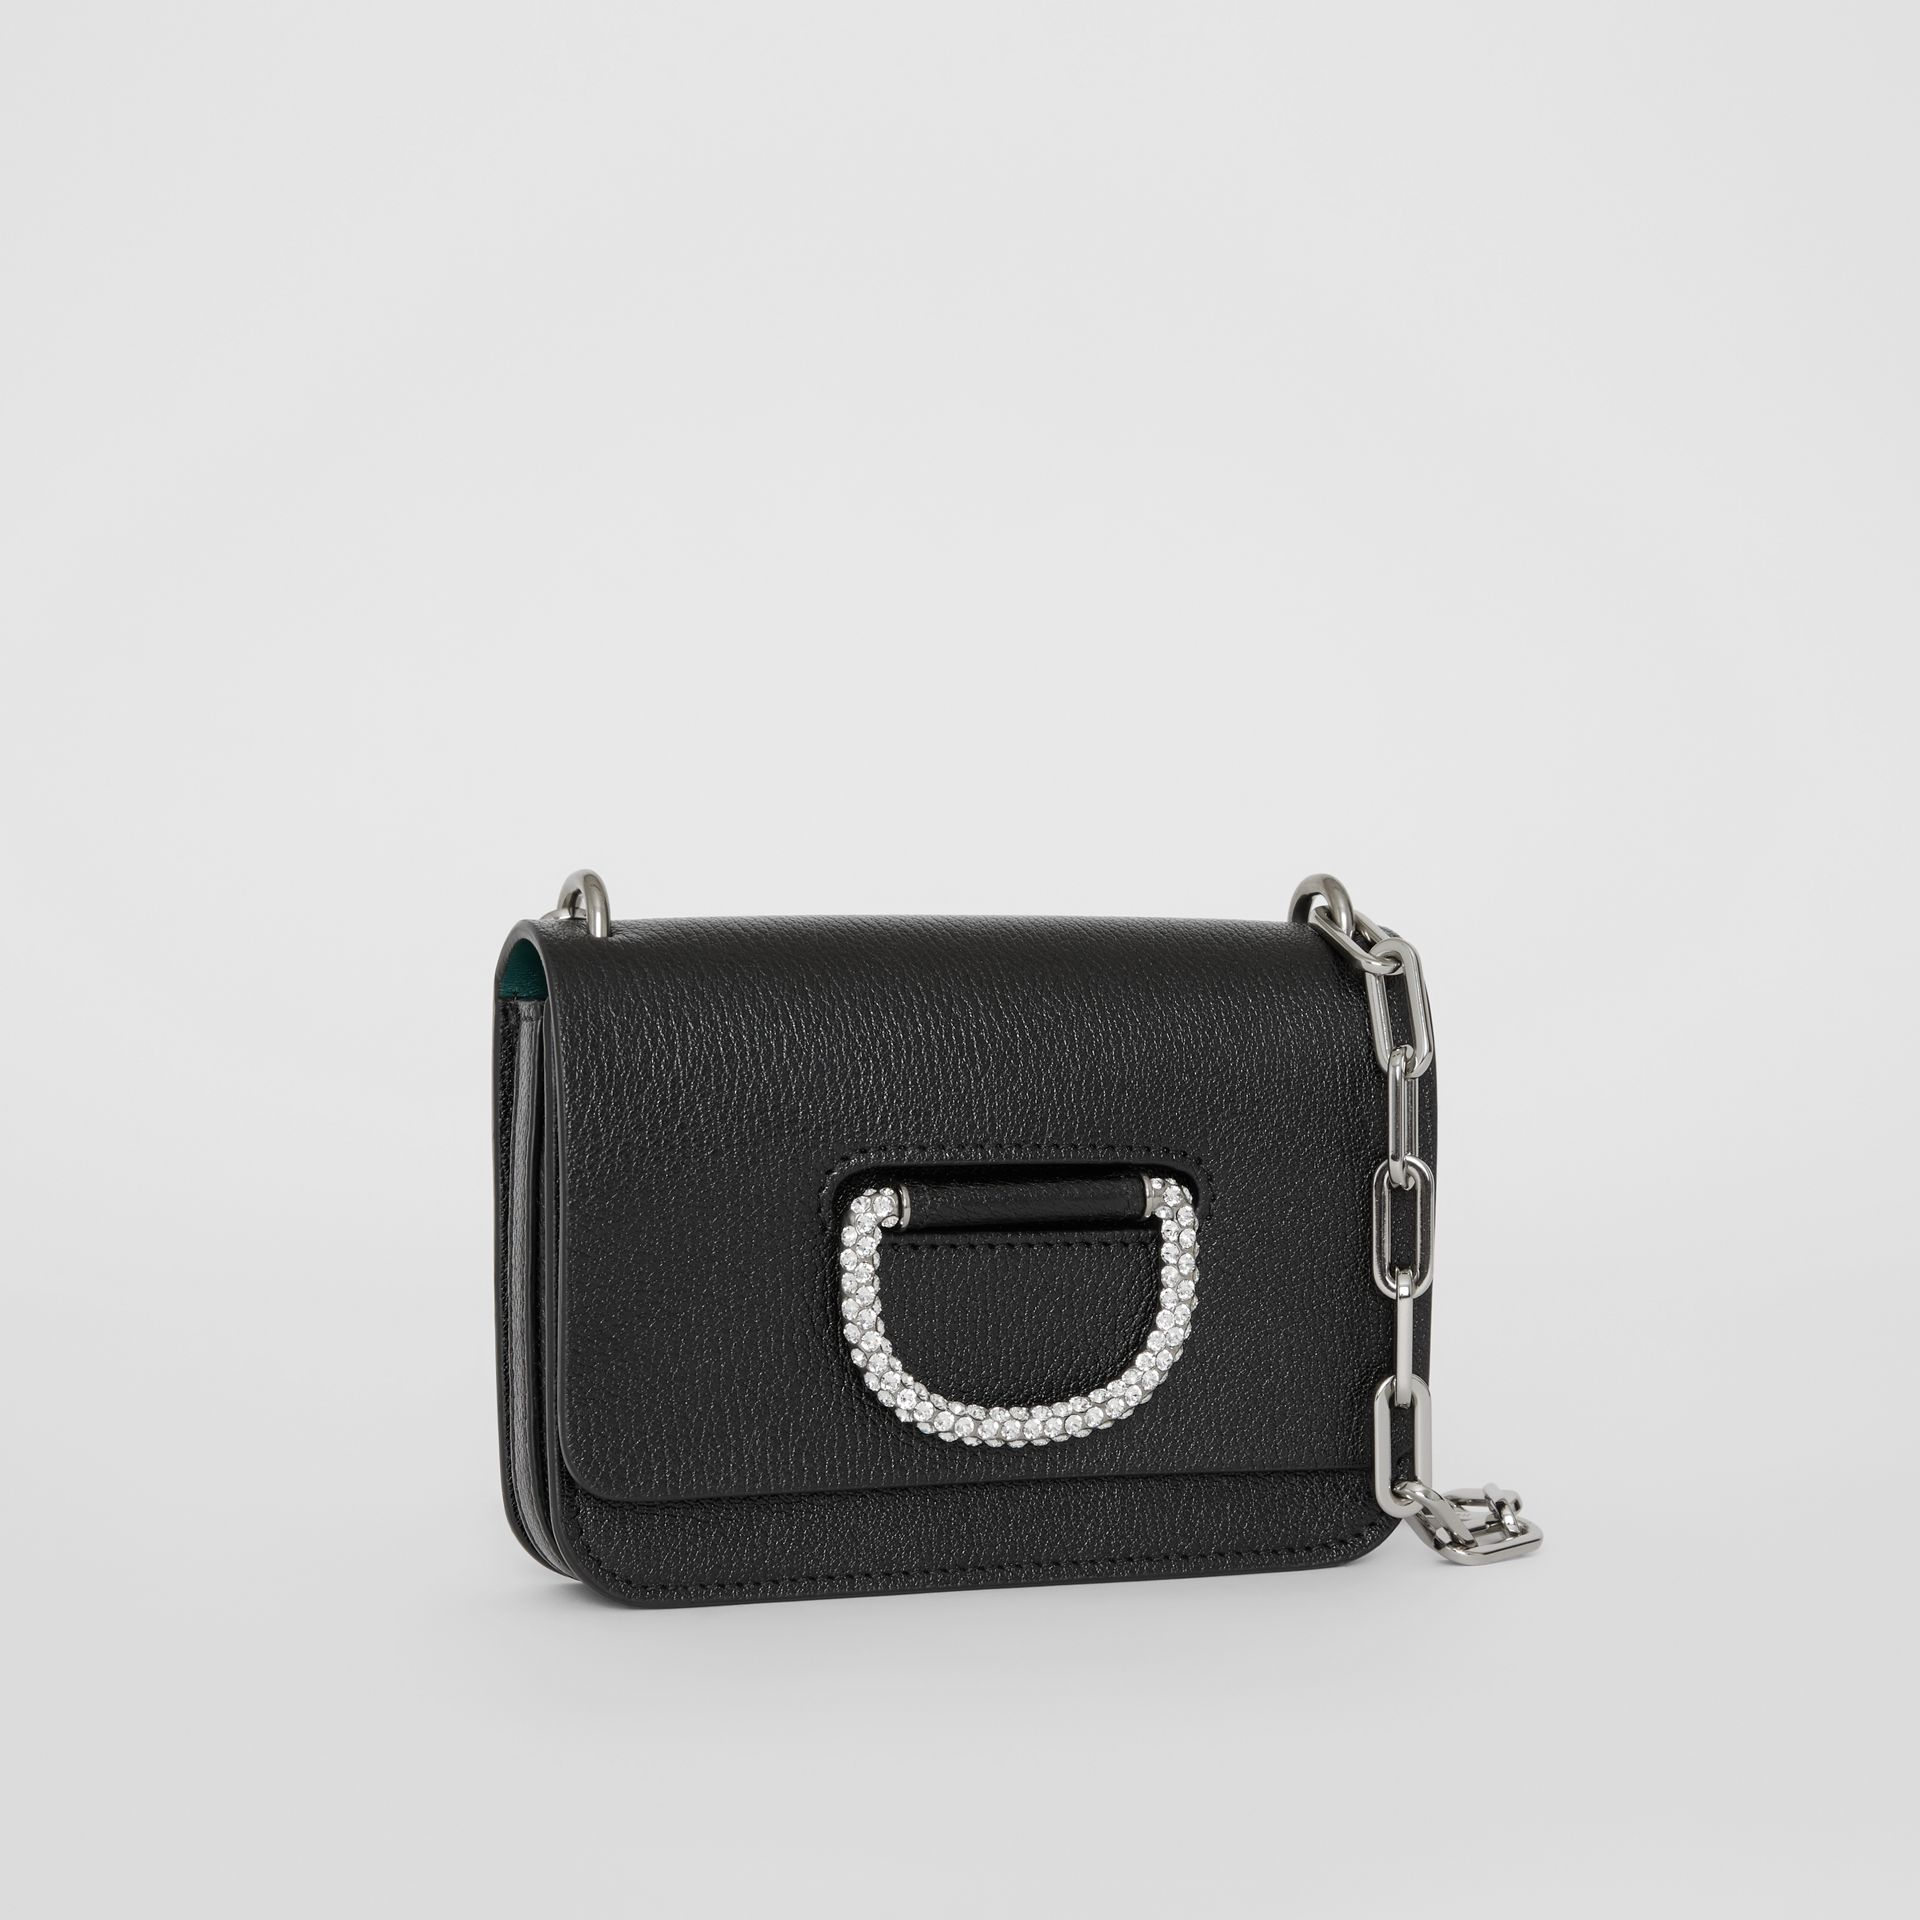 Borsa The D-ring mini in pelle con cristalli (Nero) - Donna | Burberry - immagine della galleria 5